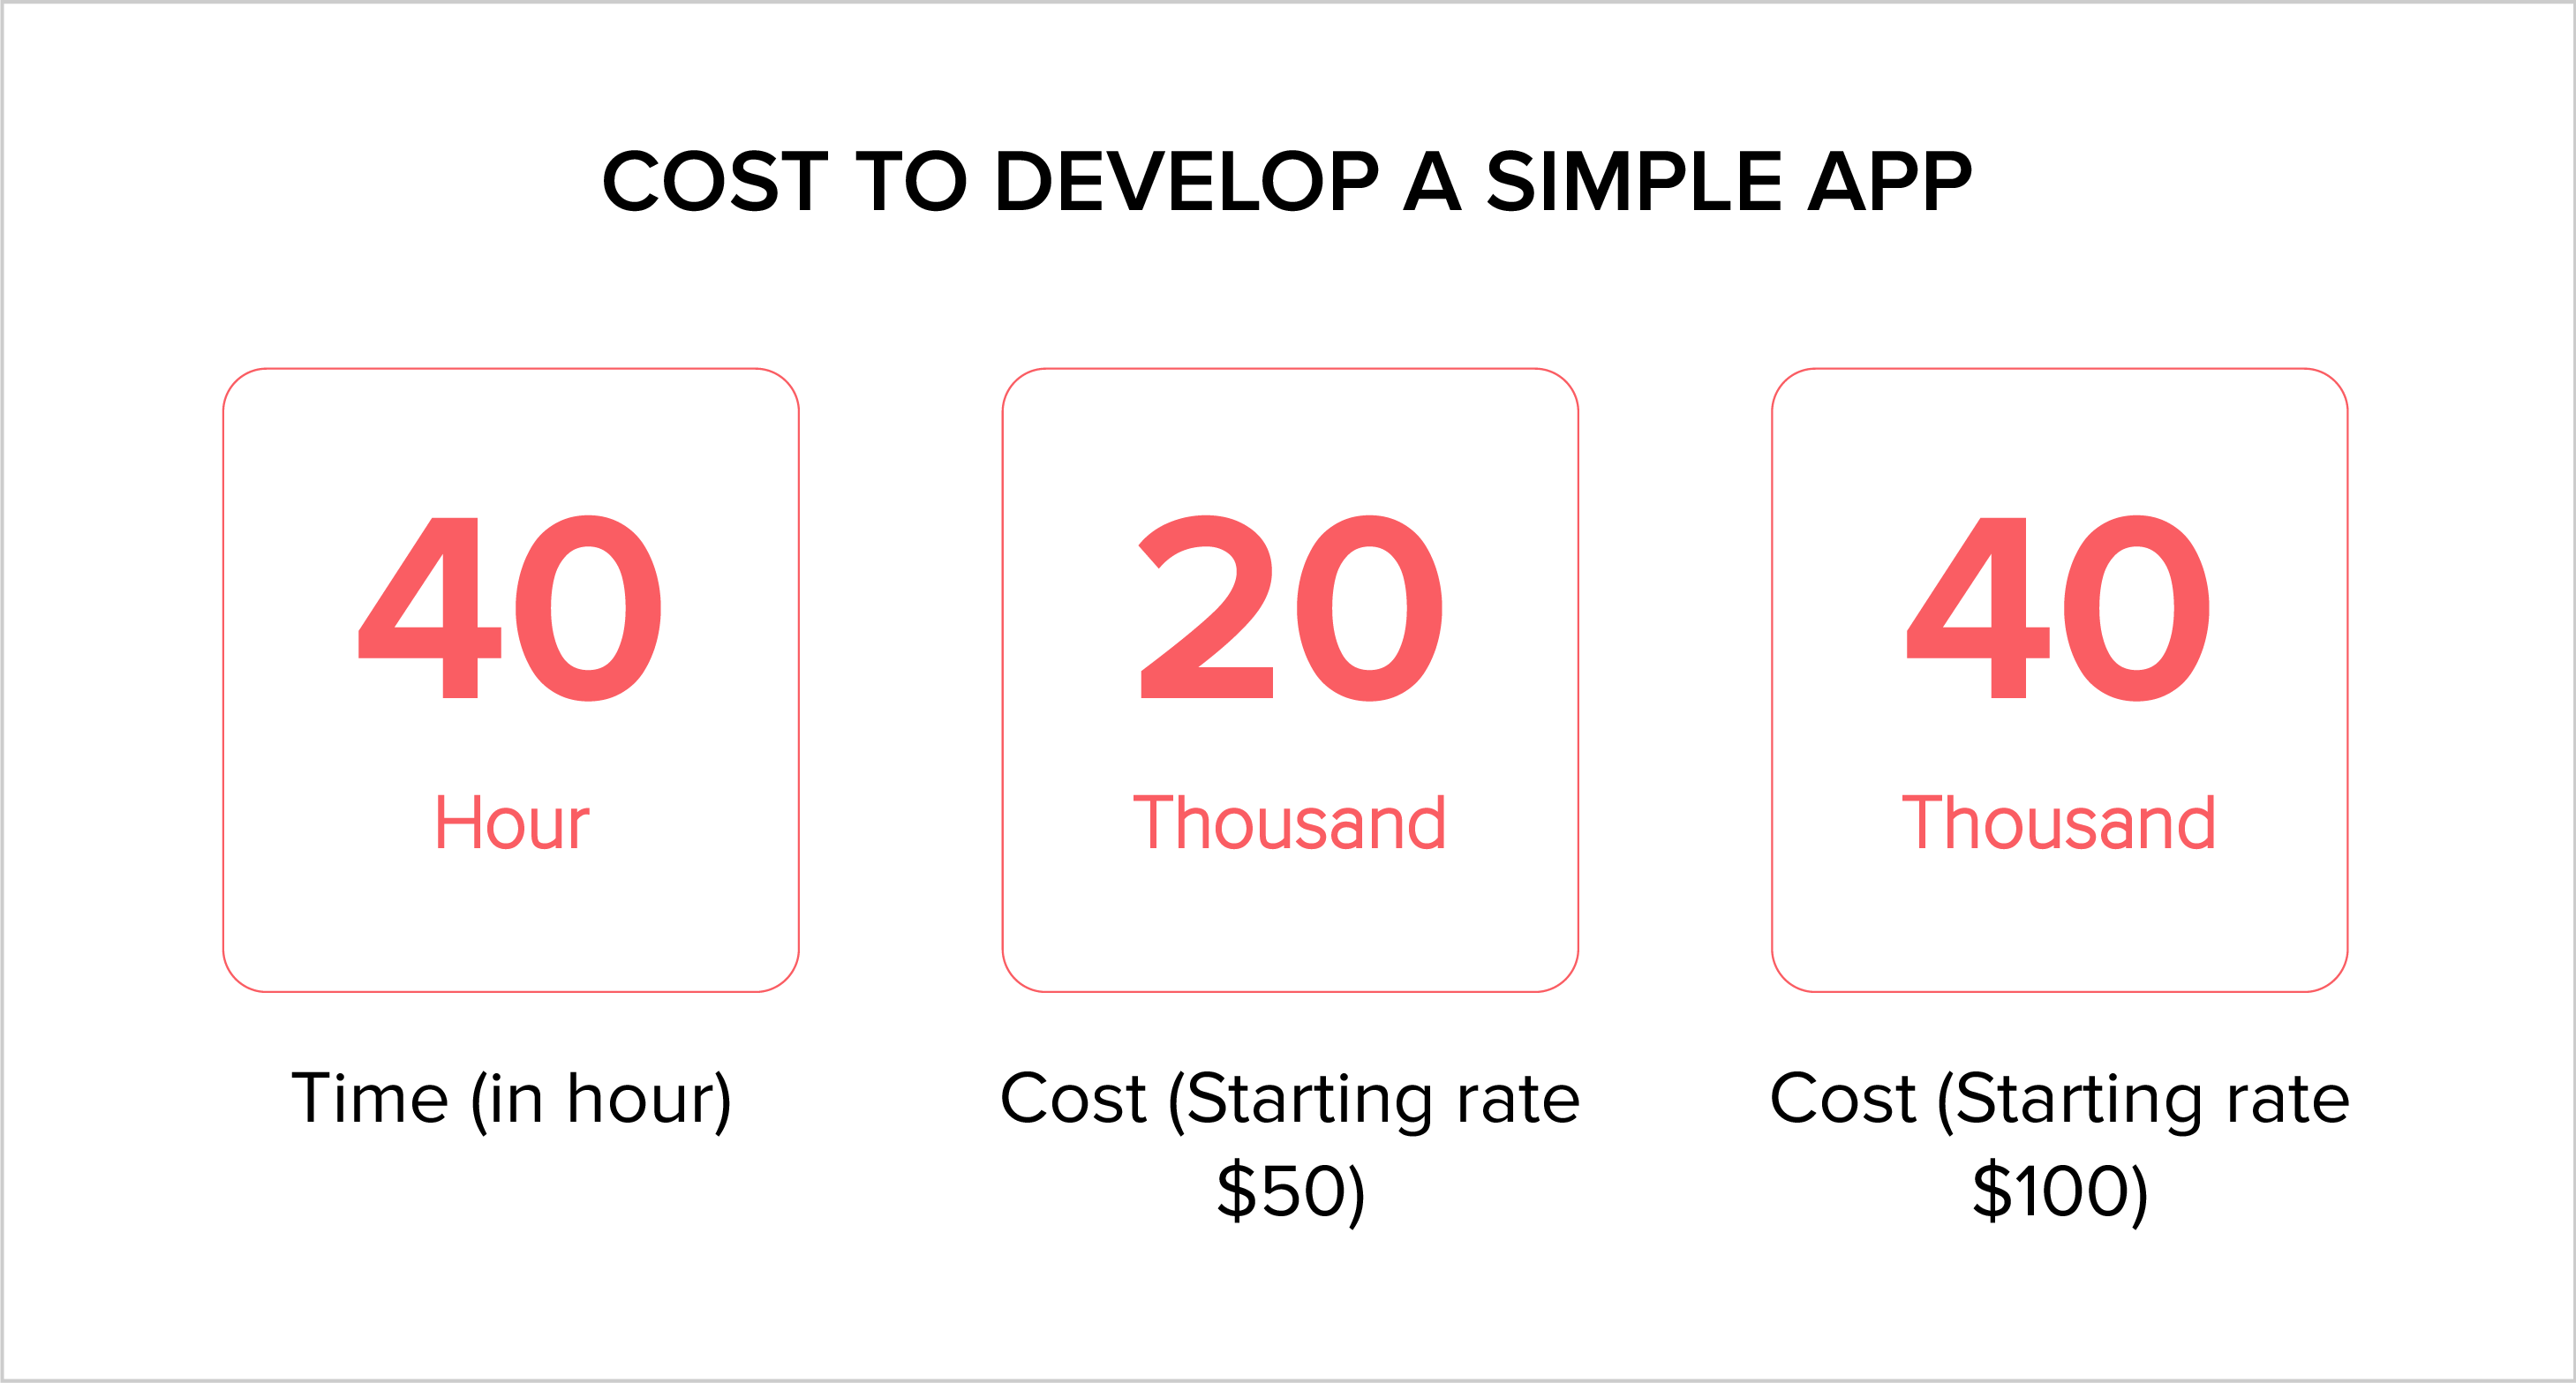 Cost to develop a simple app